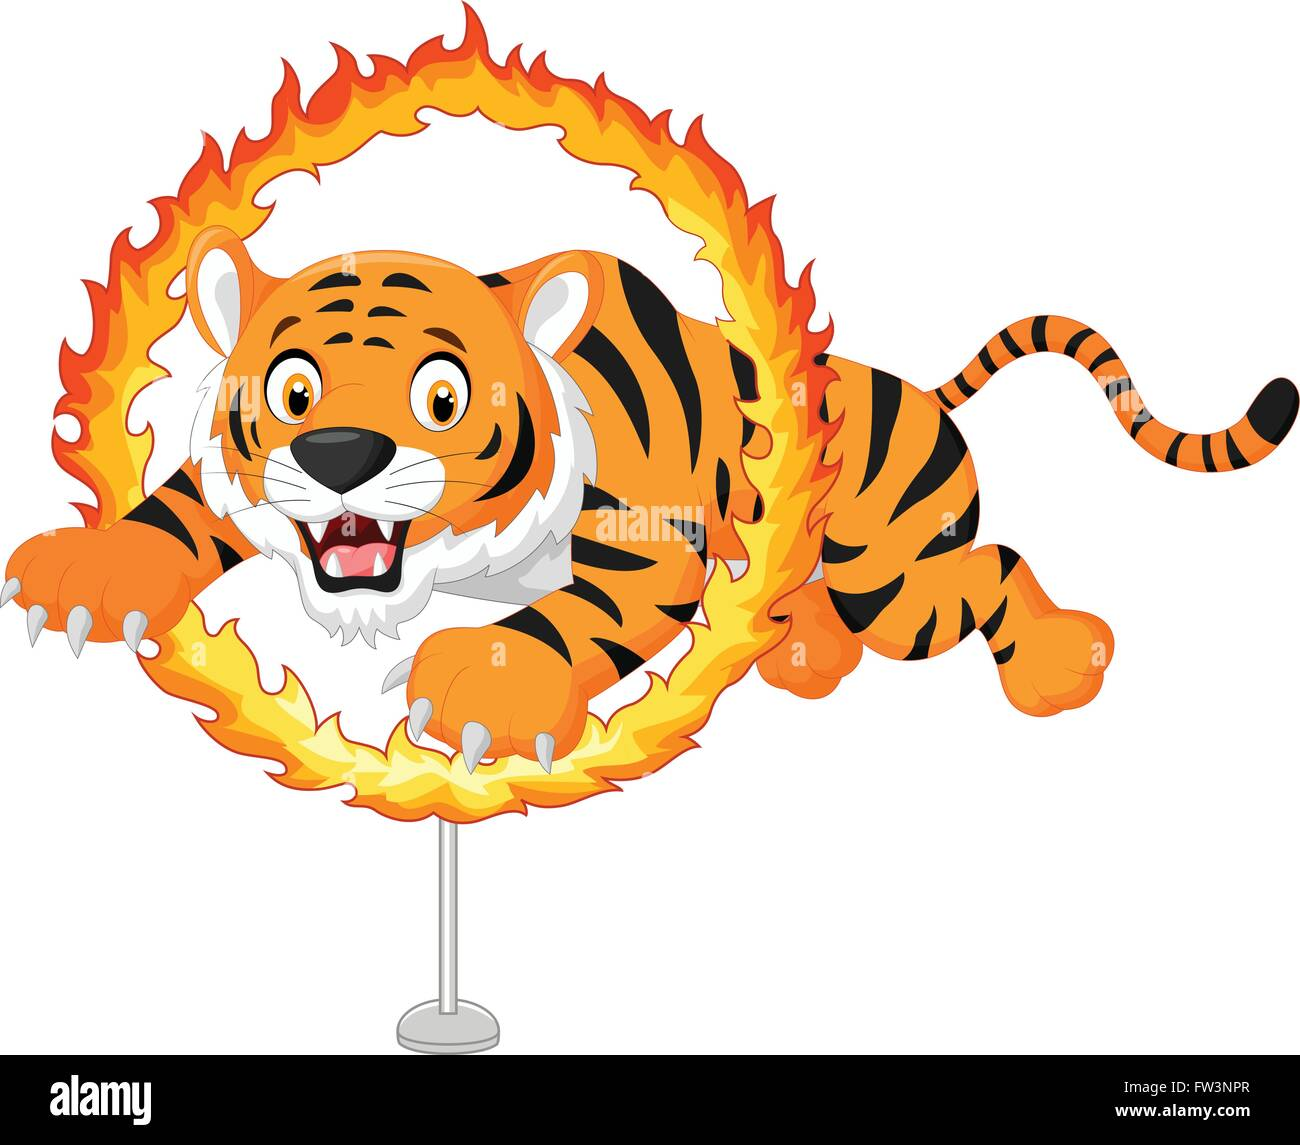 cartoon tiger jumps through ring of fire stock vector art rh alamy com Jumping through Ring of Fire Clip Art ring of fire clip art free